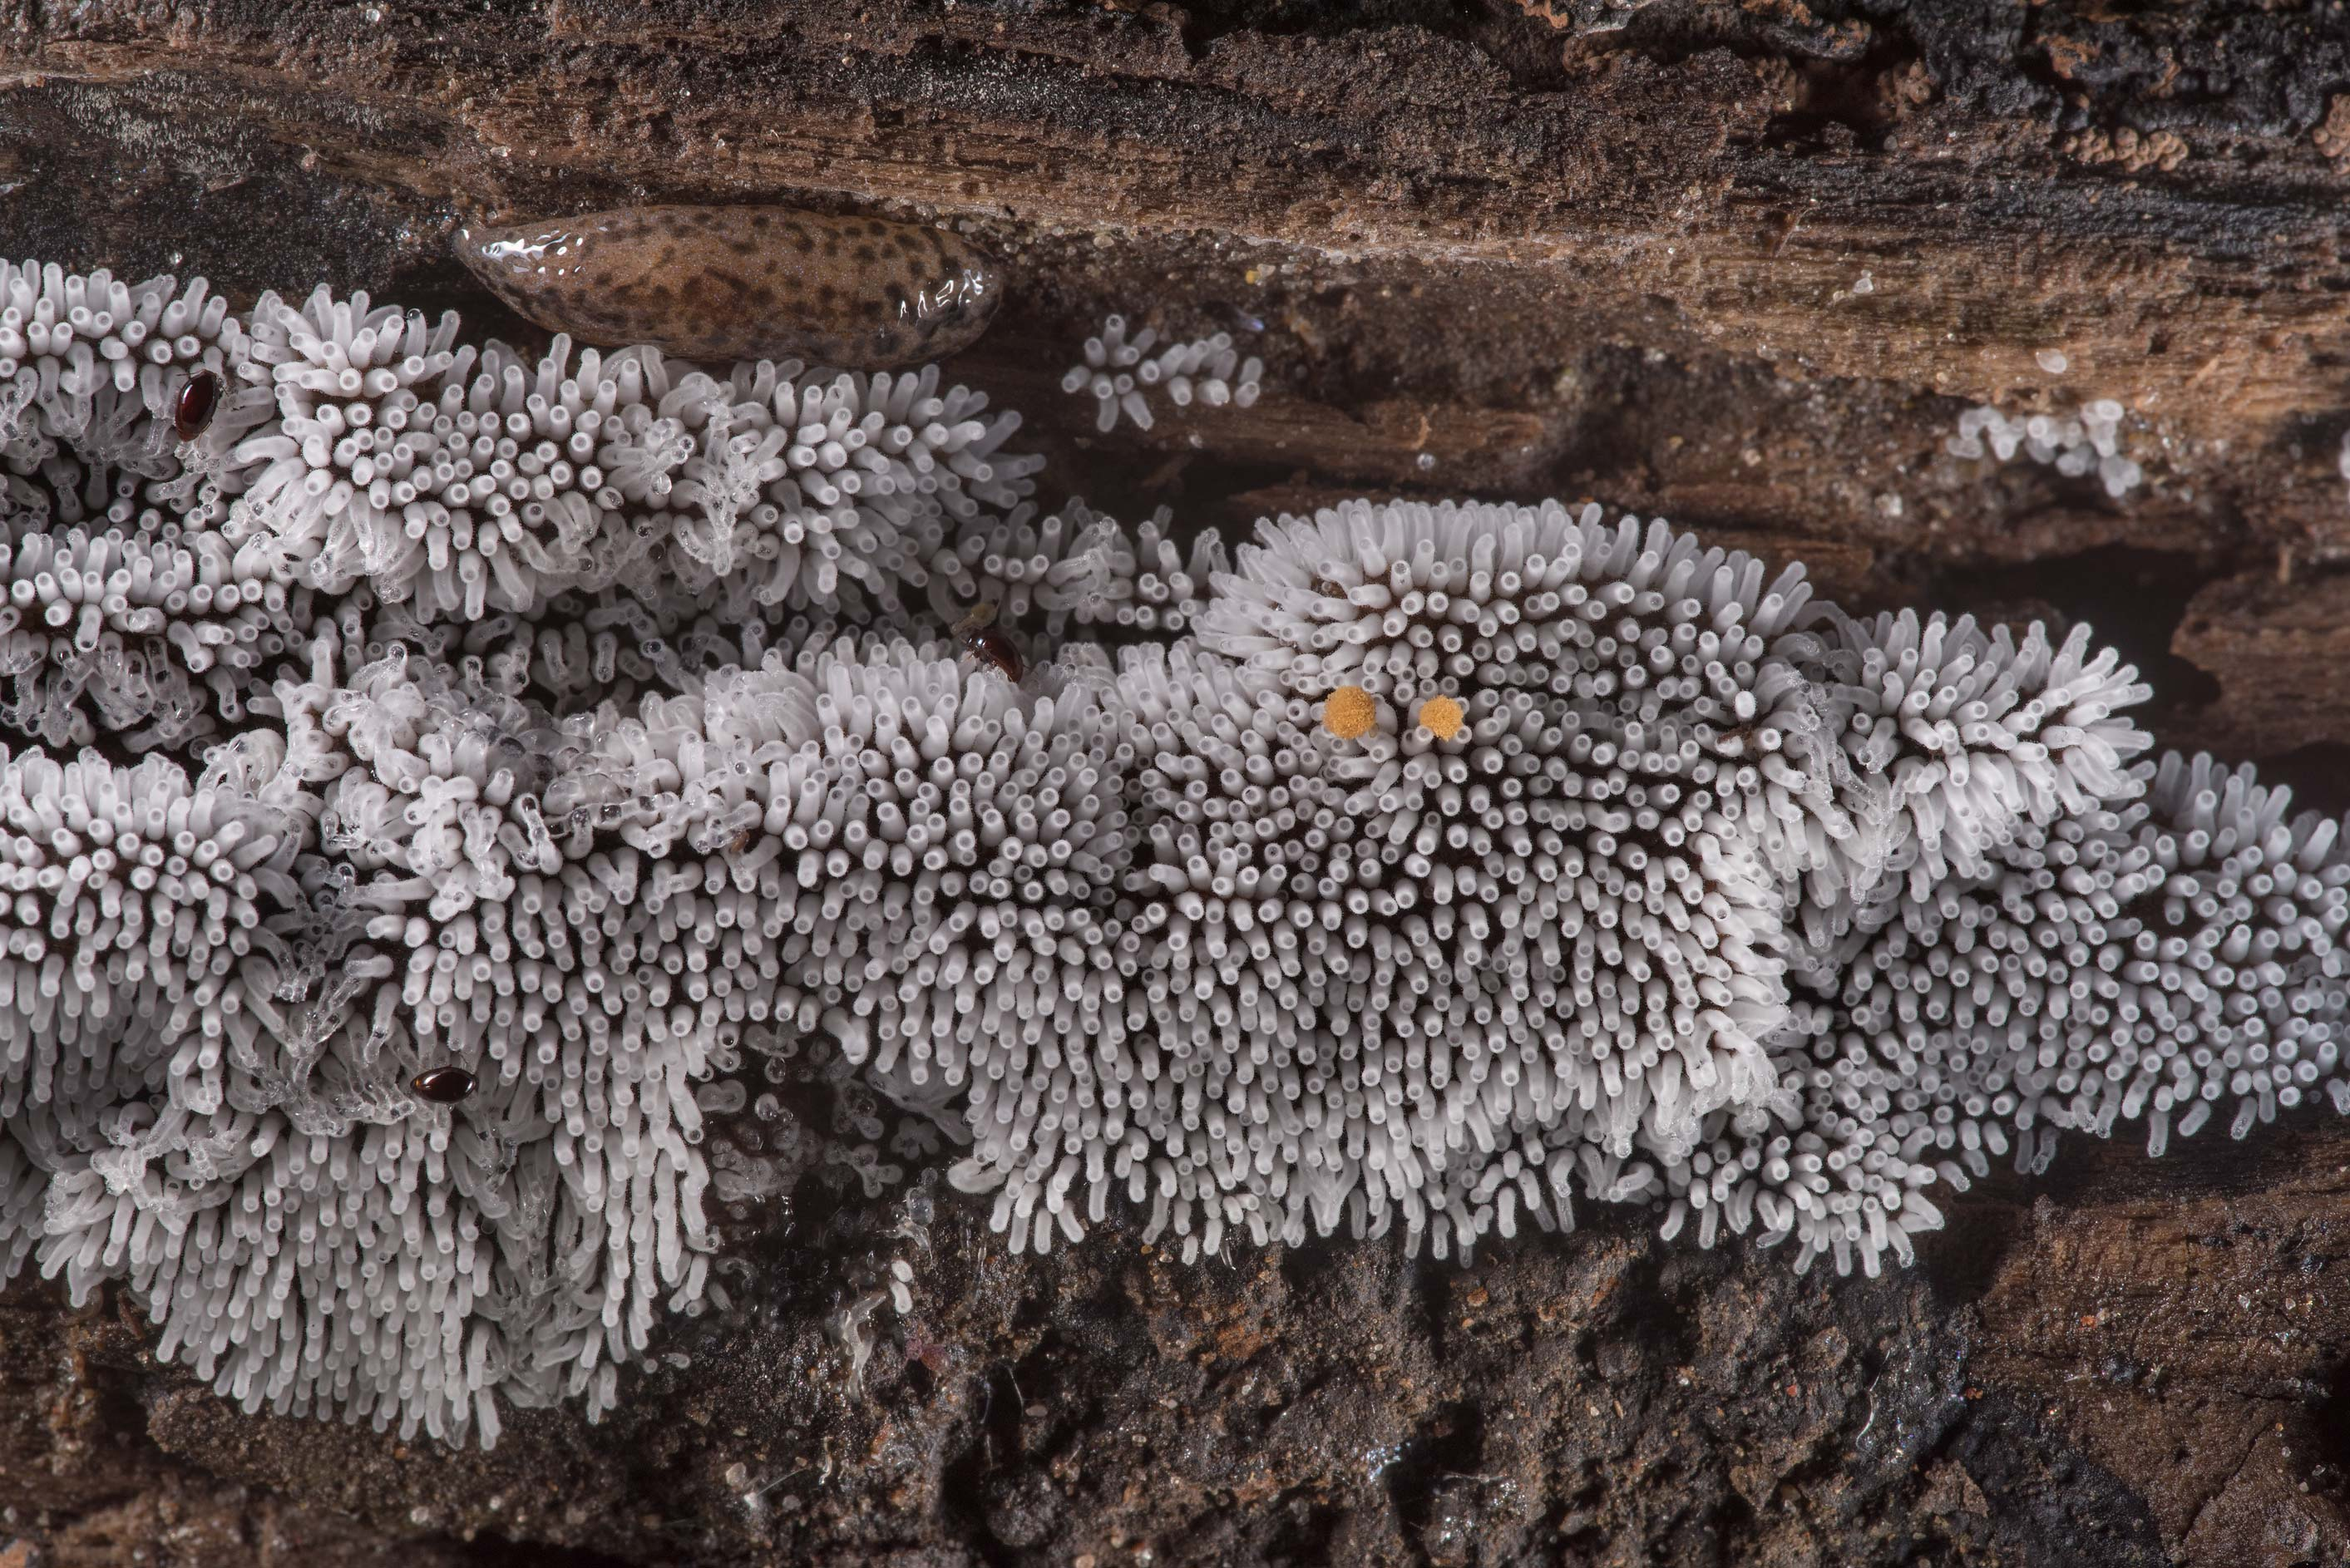 Coral slime mold (Ceratiomyxa fruticulosa) with a...National Forest near Huntsville. Texas